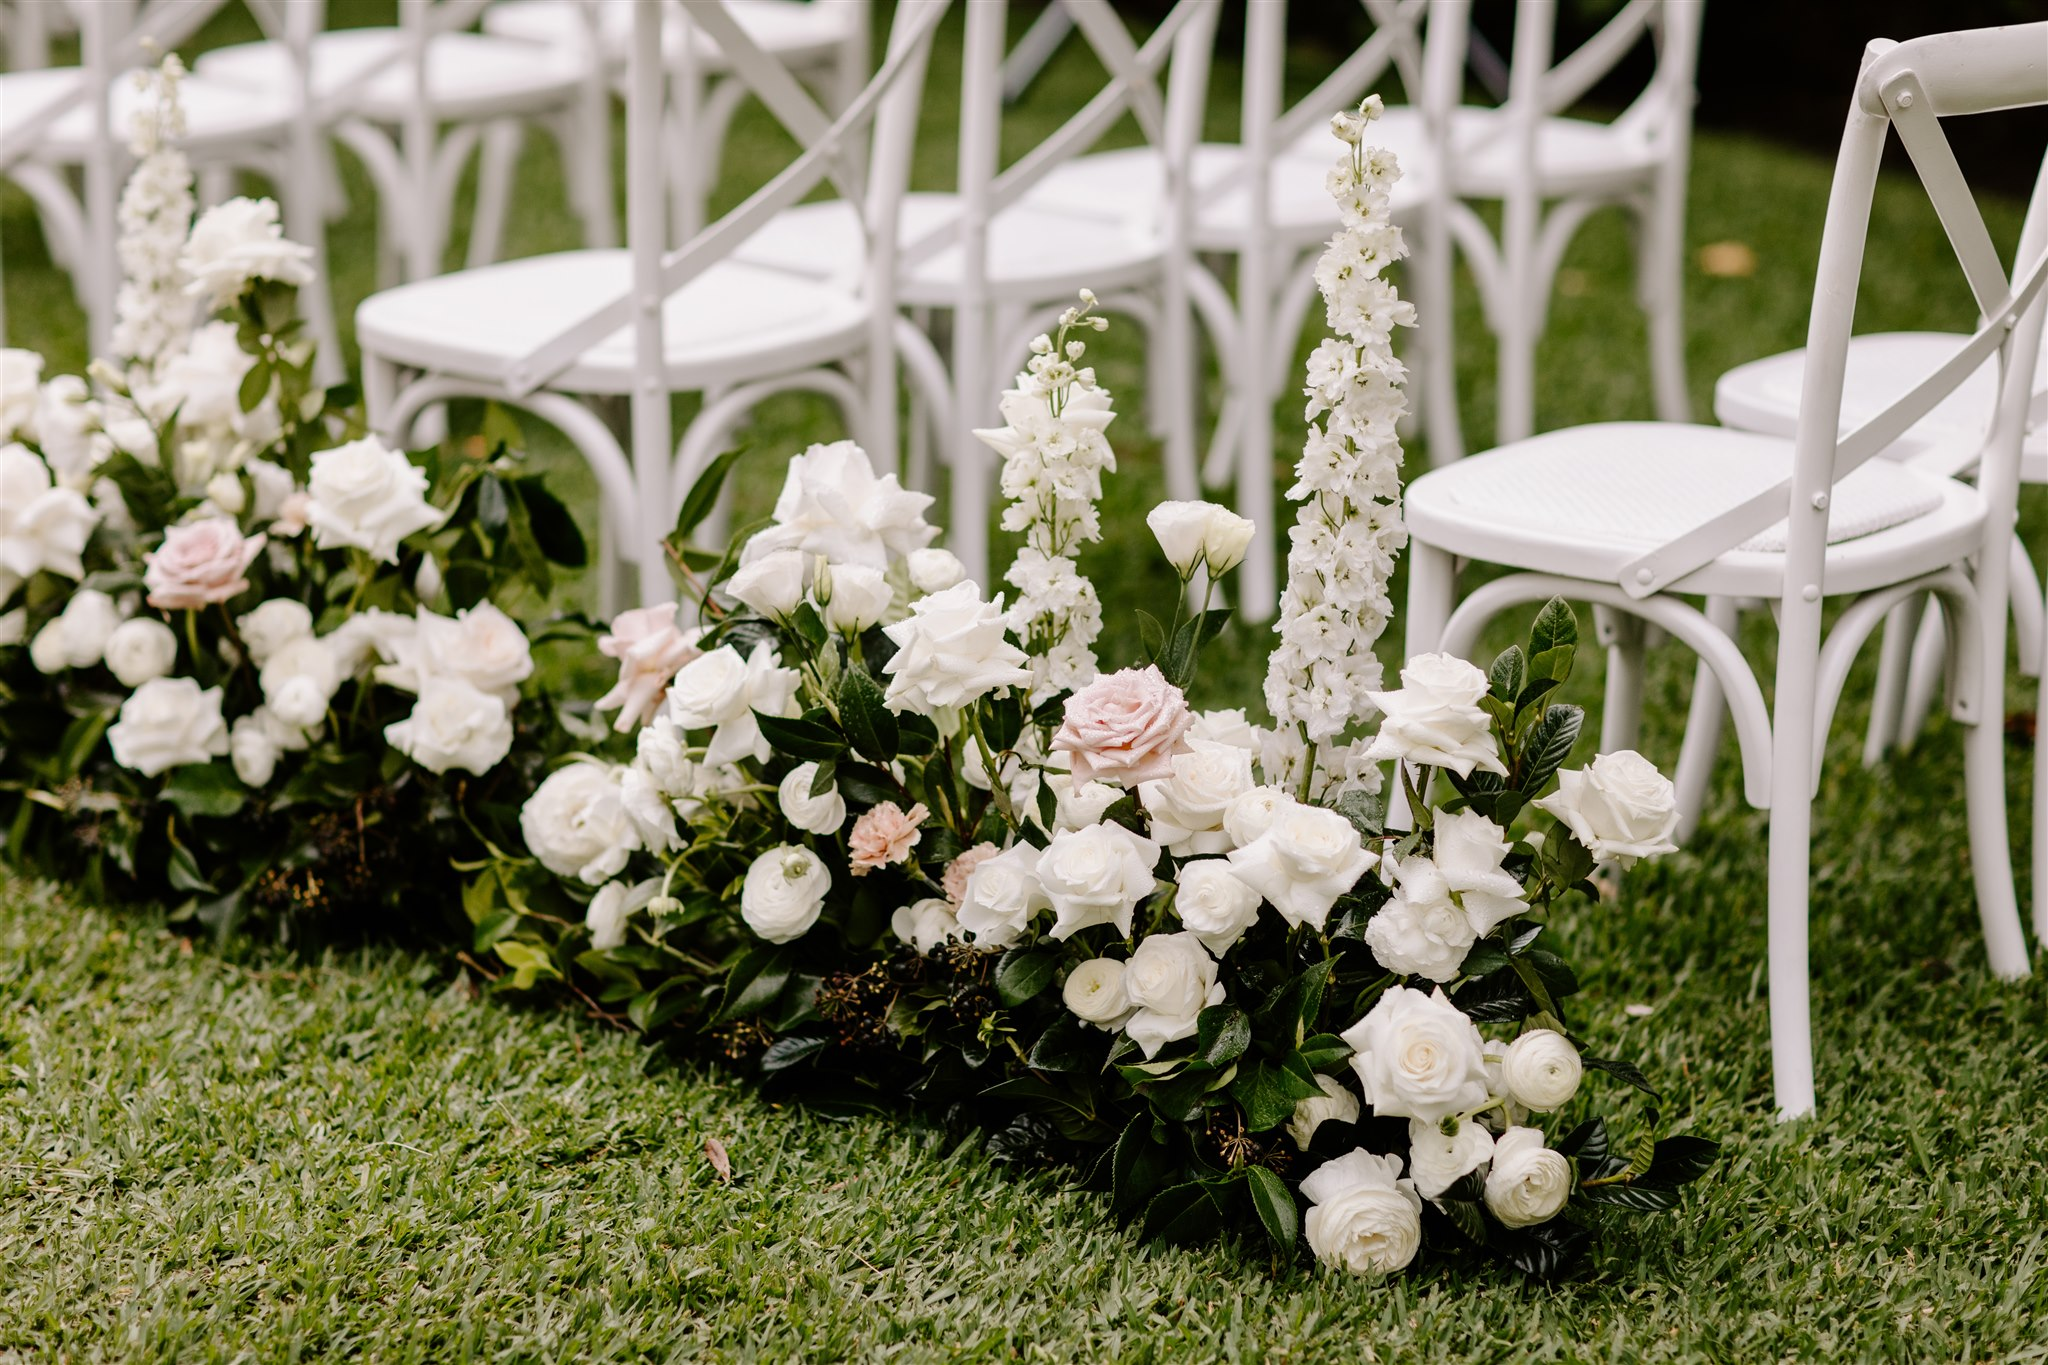 Ceremony aisle hedging featuring roses and ranunculus